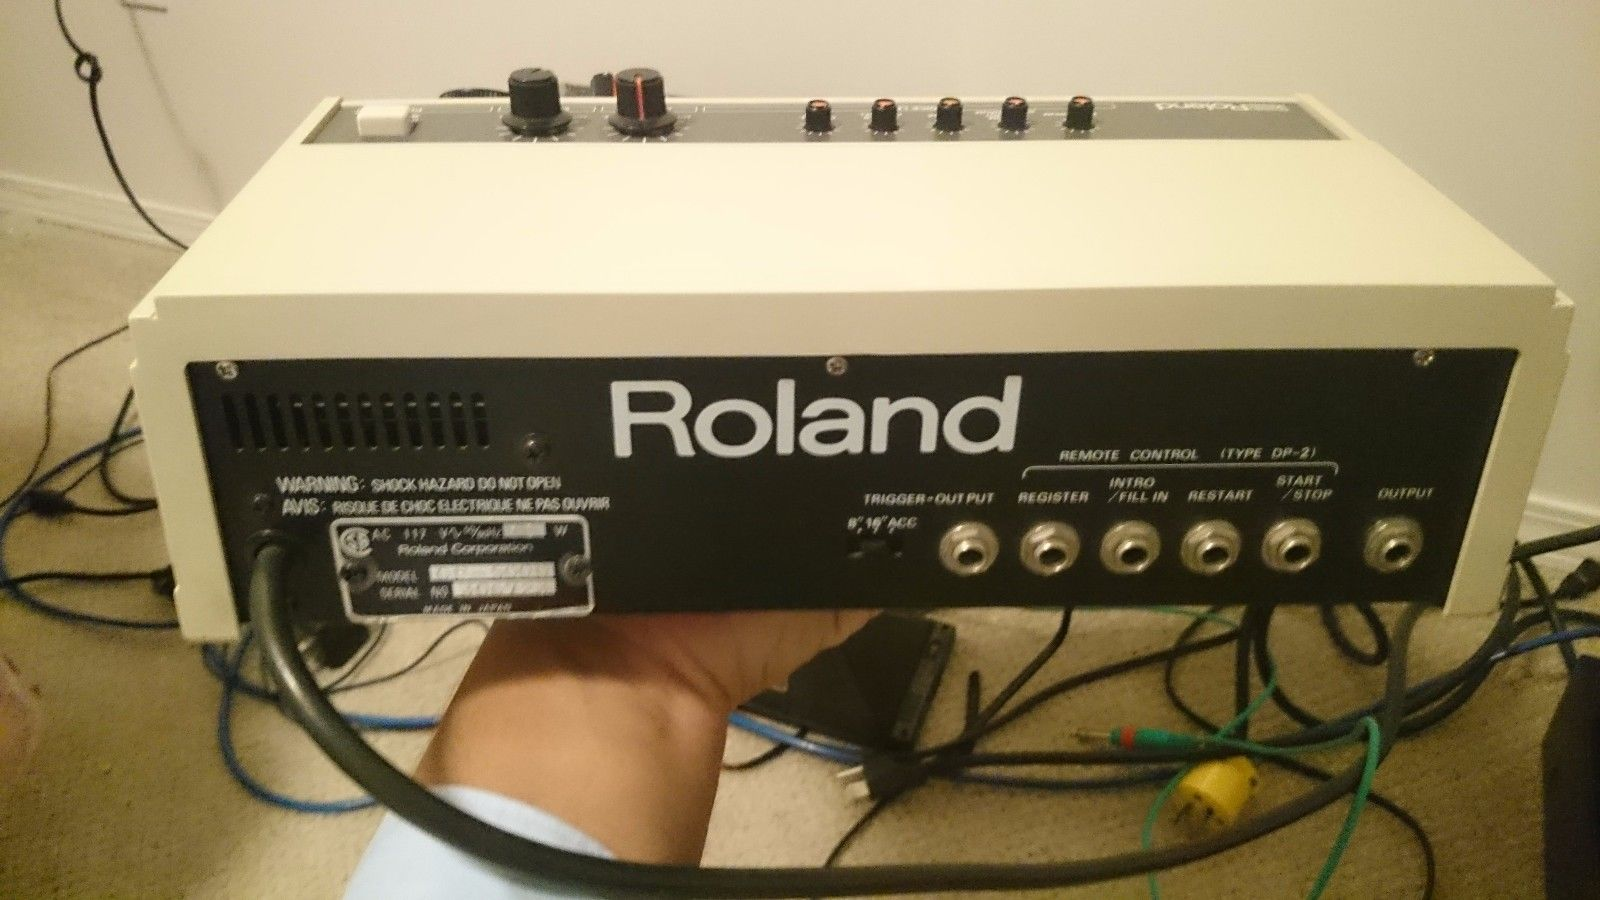 MATRIXSYNTH: Roland CR-5000 Analog Drum Machine Synthesizer with